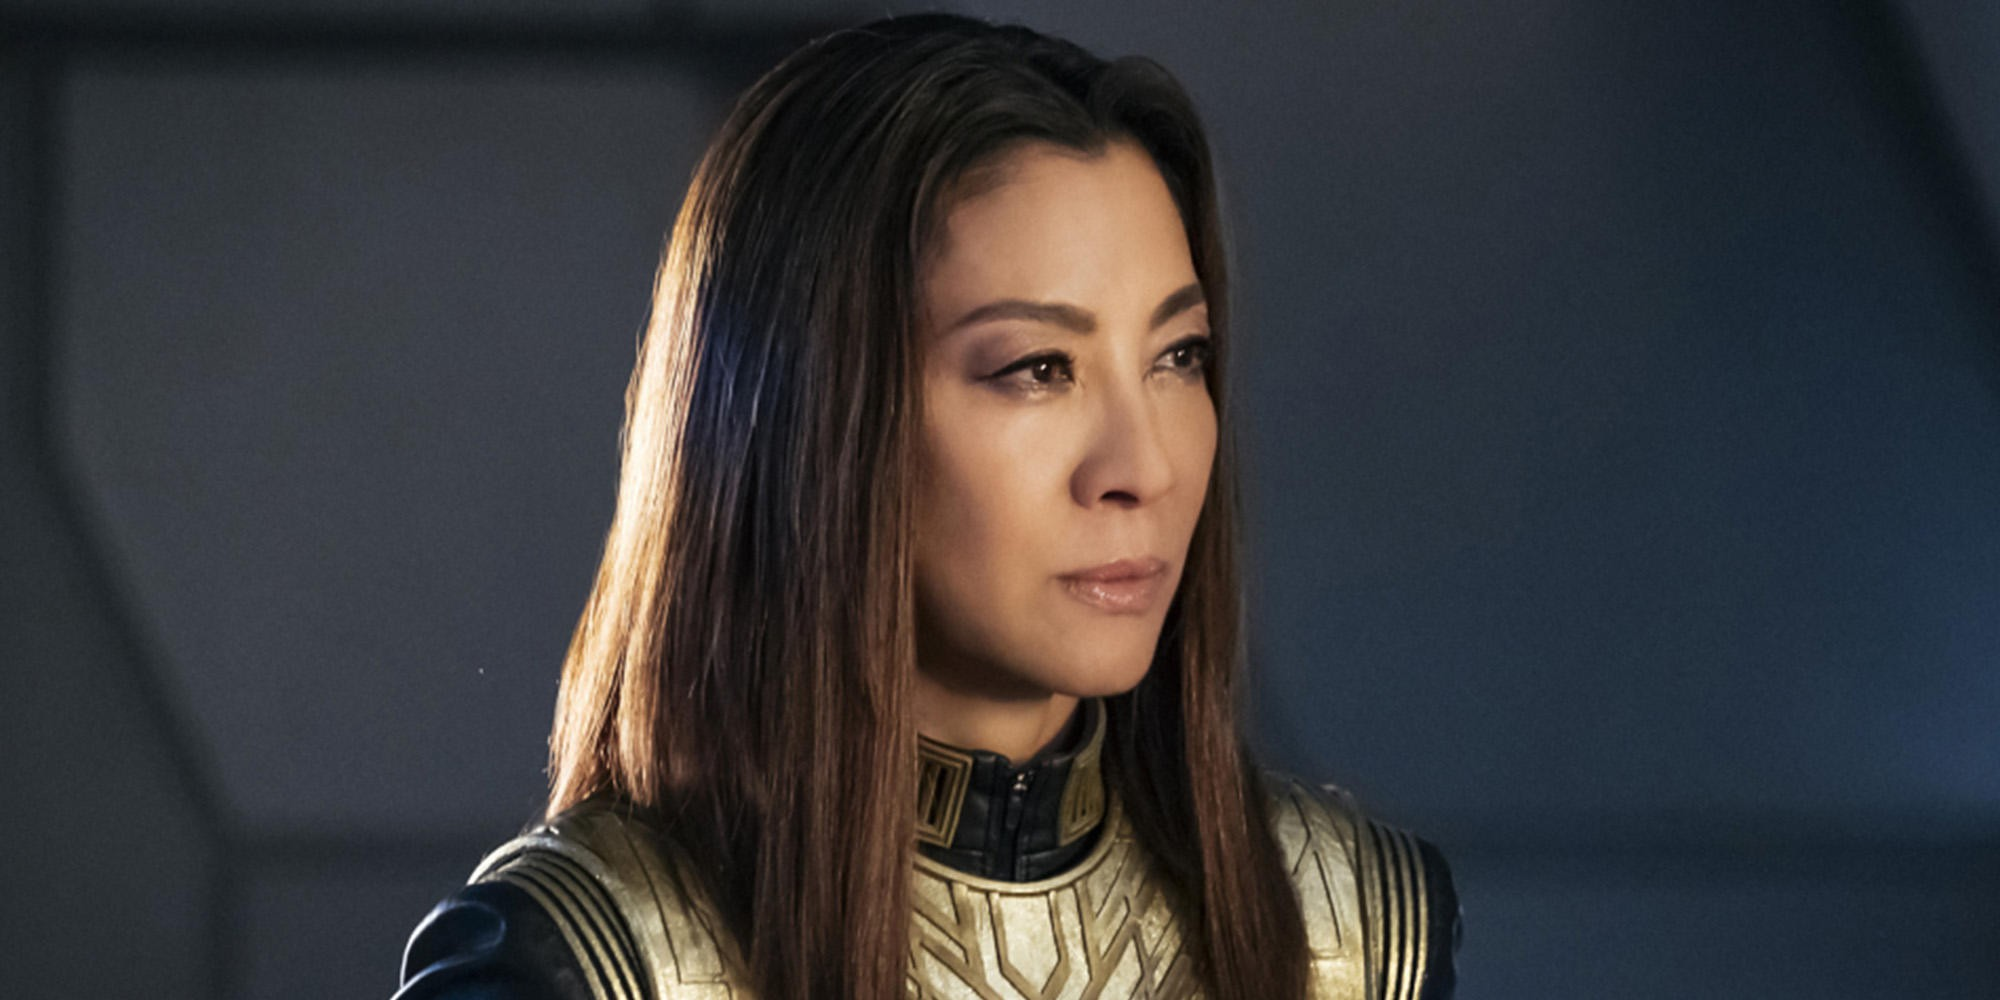 Michelle-Yeoh-as-Philippa-Georgiou-Mirror-in-Star-Trek-Discovery